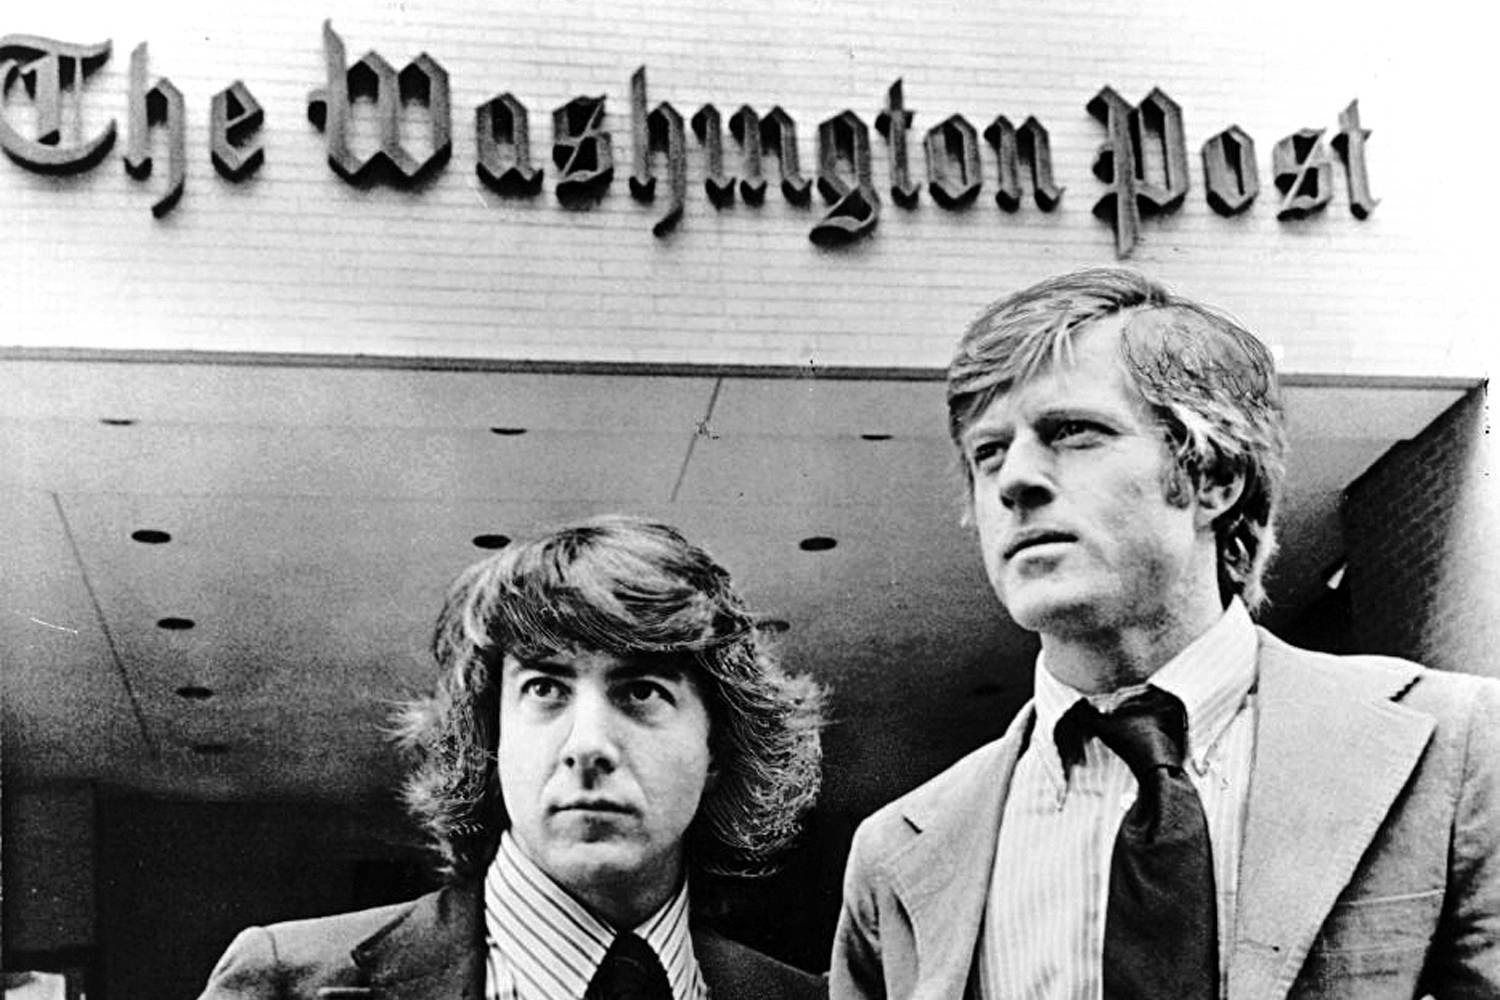 All the President's Men is a 1974 non-fiction book by Carl Bernstein and Bob Woodward, two of the journalists who investigated the June 1972 break-in at the Watergate Office Building and the resultant political scandal for The Washington Post.